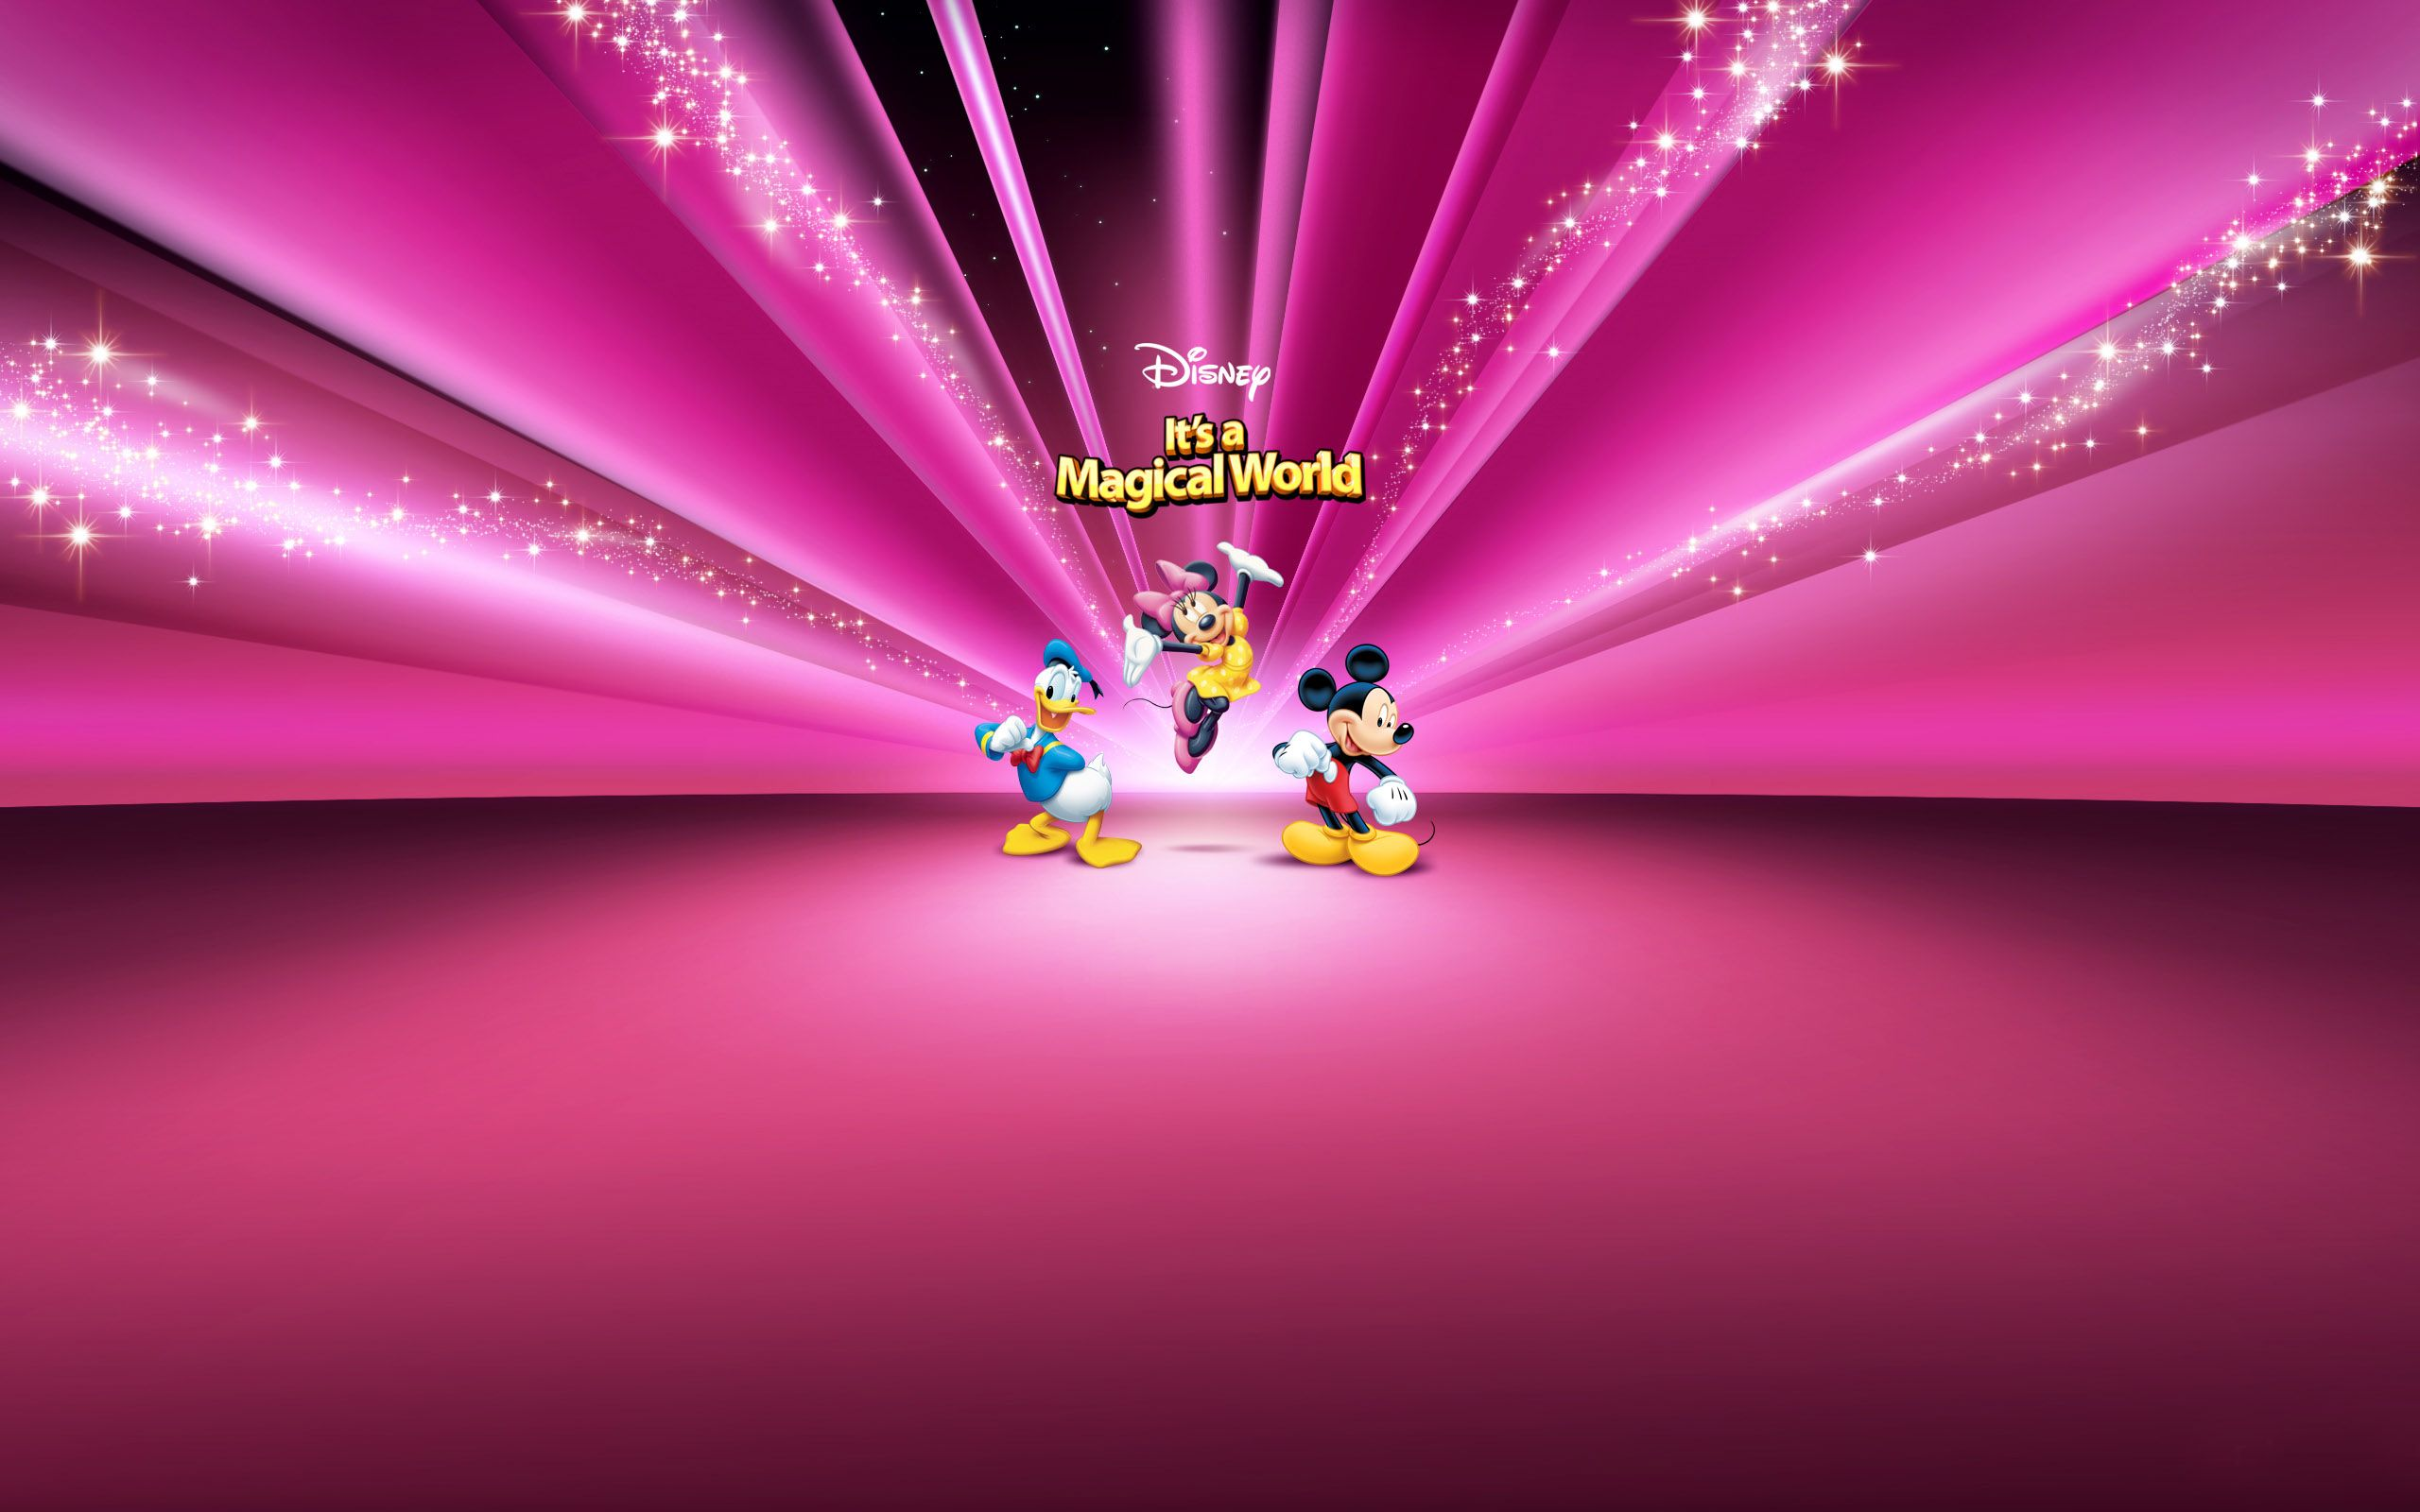 Disney Animation wallpapers and images - download wallpapers ...